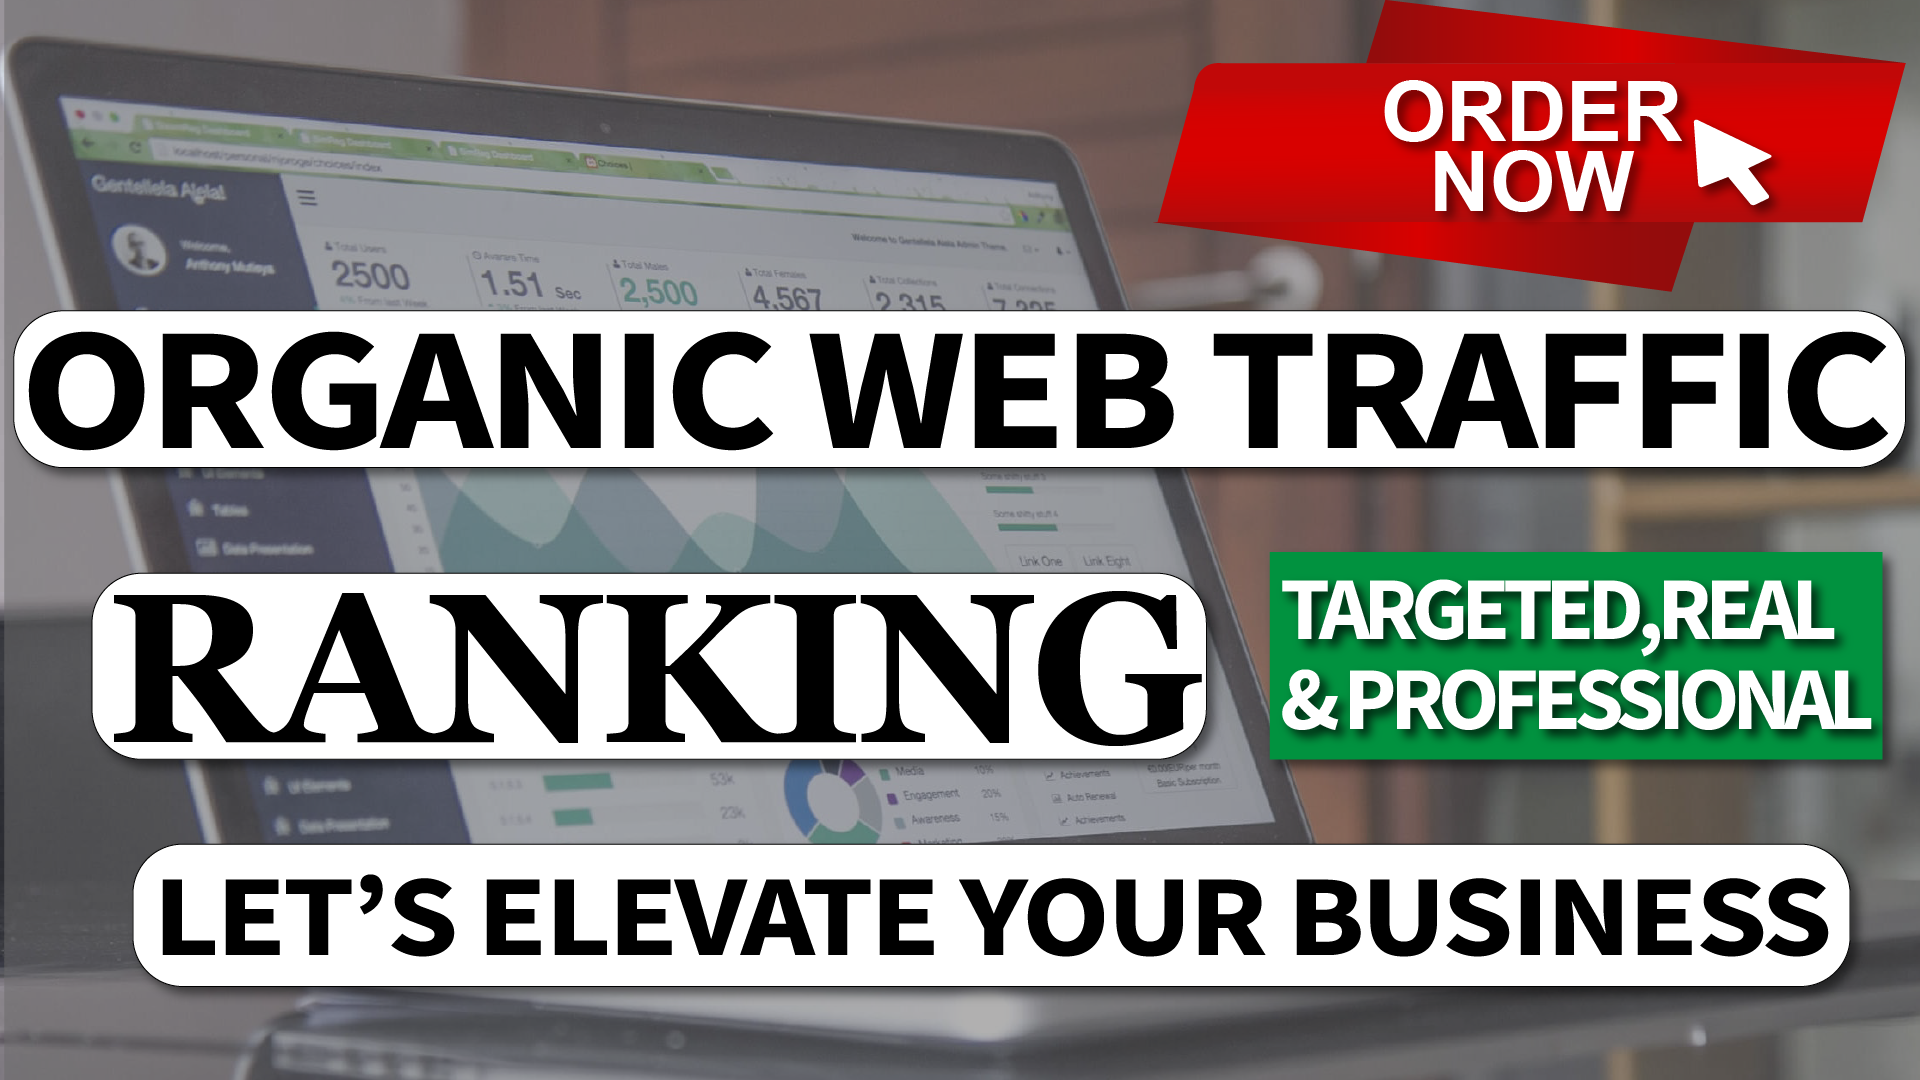 Real Organic Human Traffic for 1 Month to Your Website Through SMM